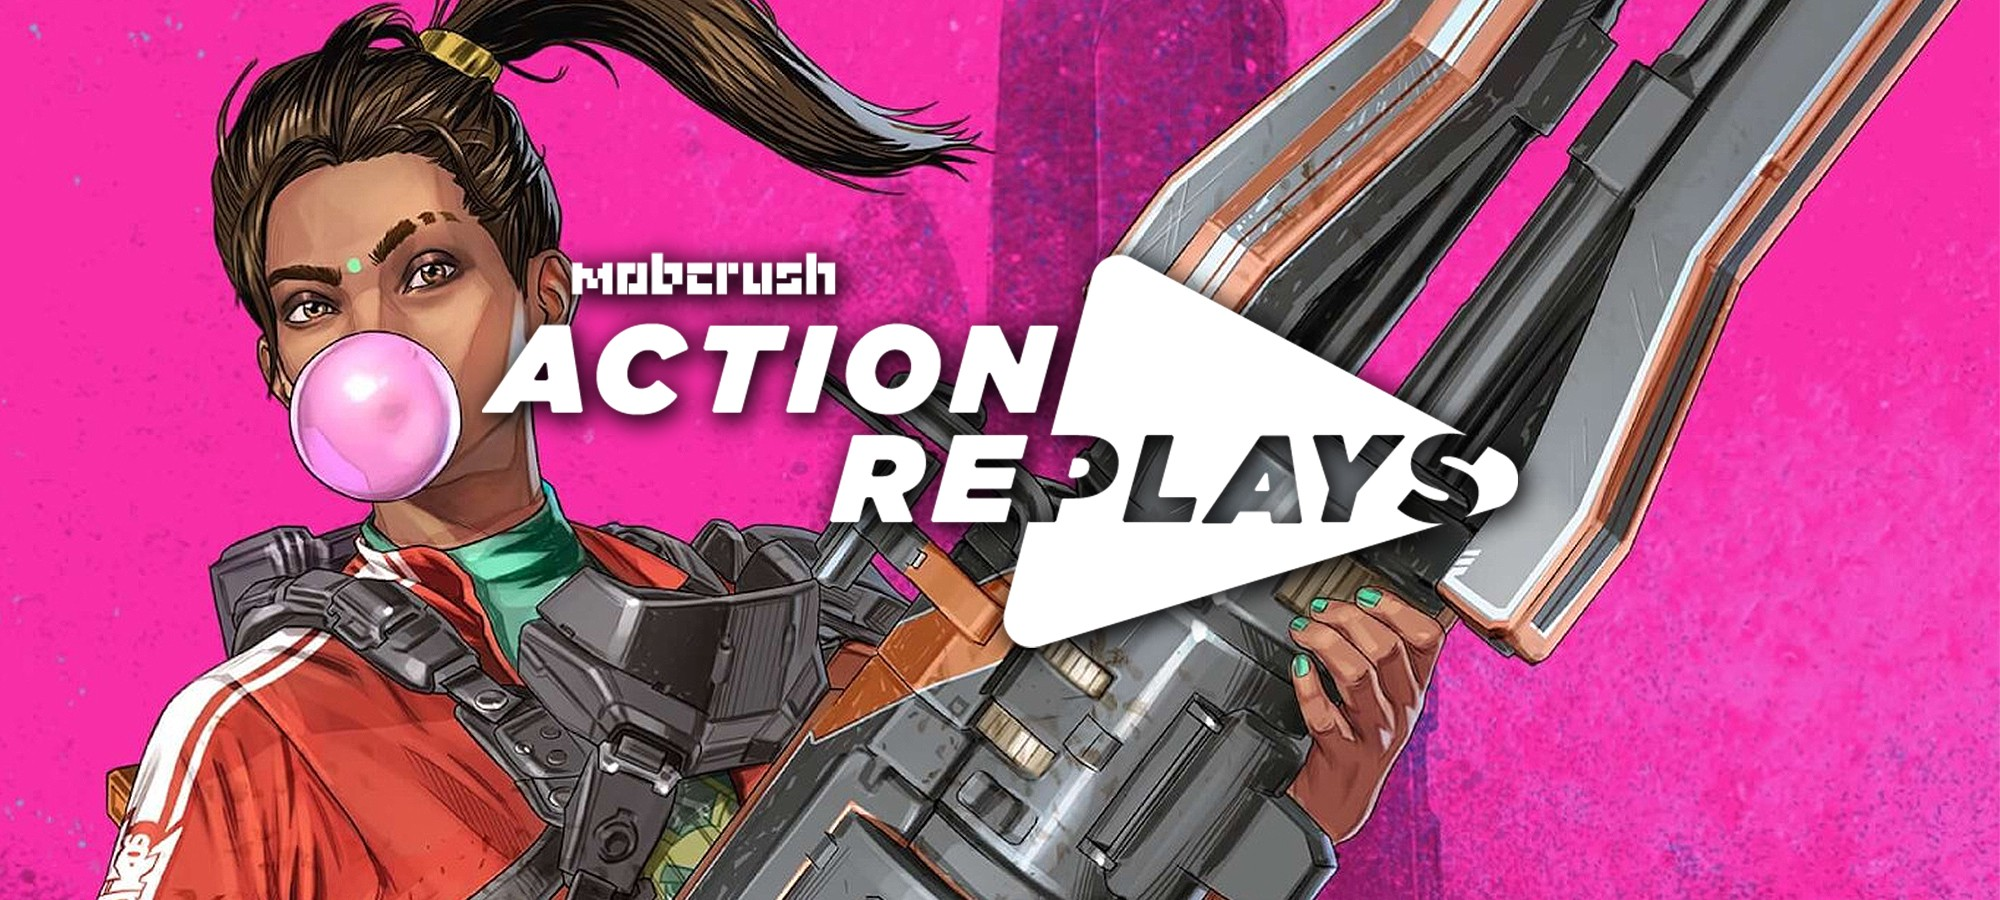 Fortnite How To Turn Replays Into A Clip Make Clips With Action Replays Get Paid With Sponsored Live Breaks By Andrew Whitehead Mobcrush Blog